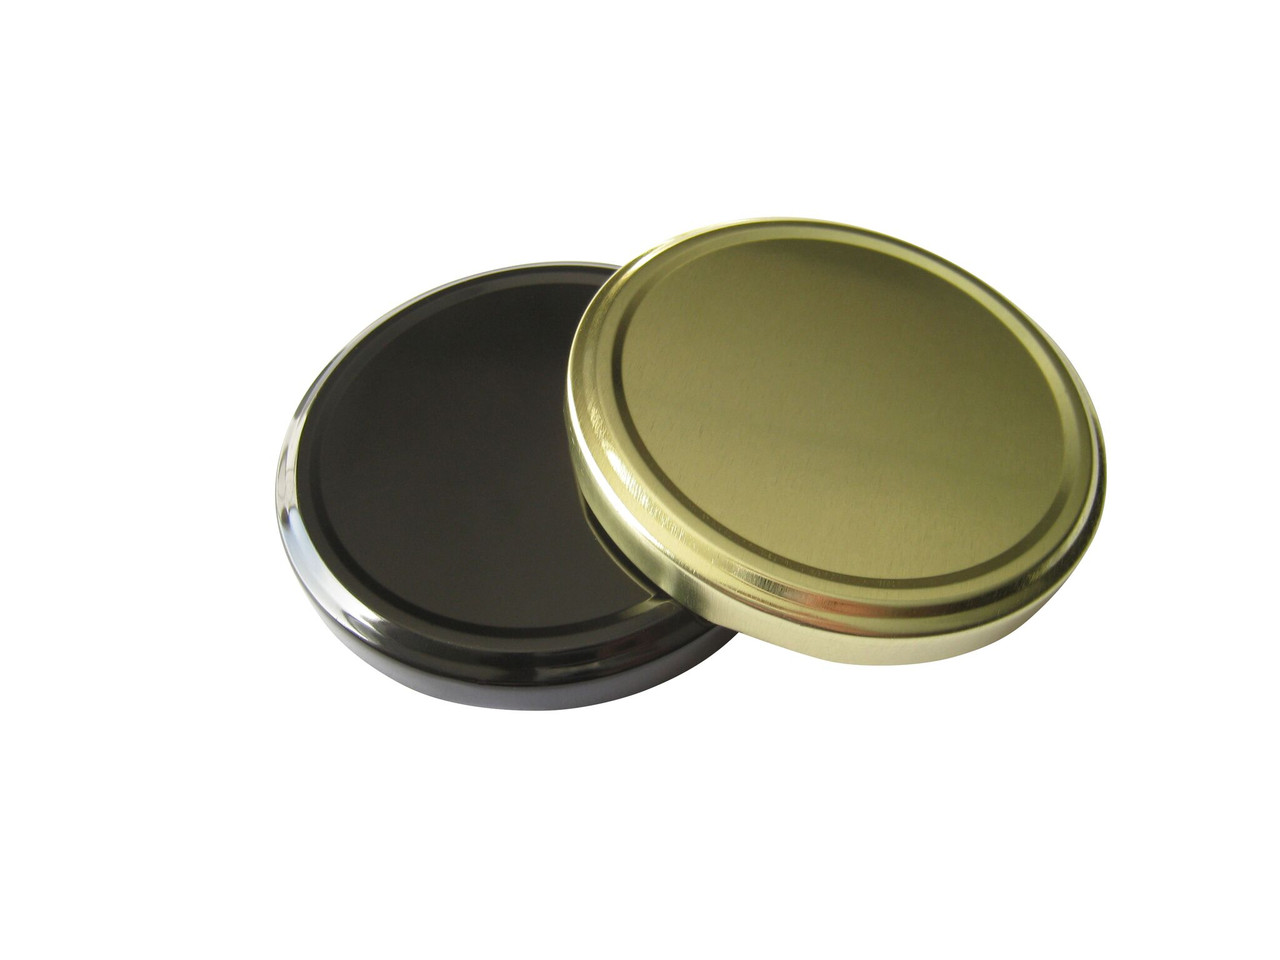 82TW Black, Silver and Gold metal lids with plastisol liner for glass jars